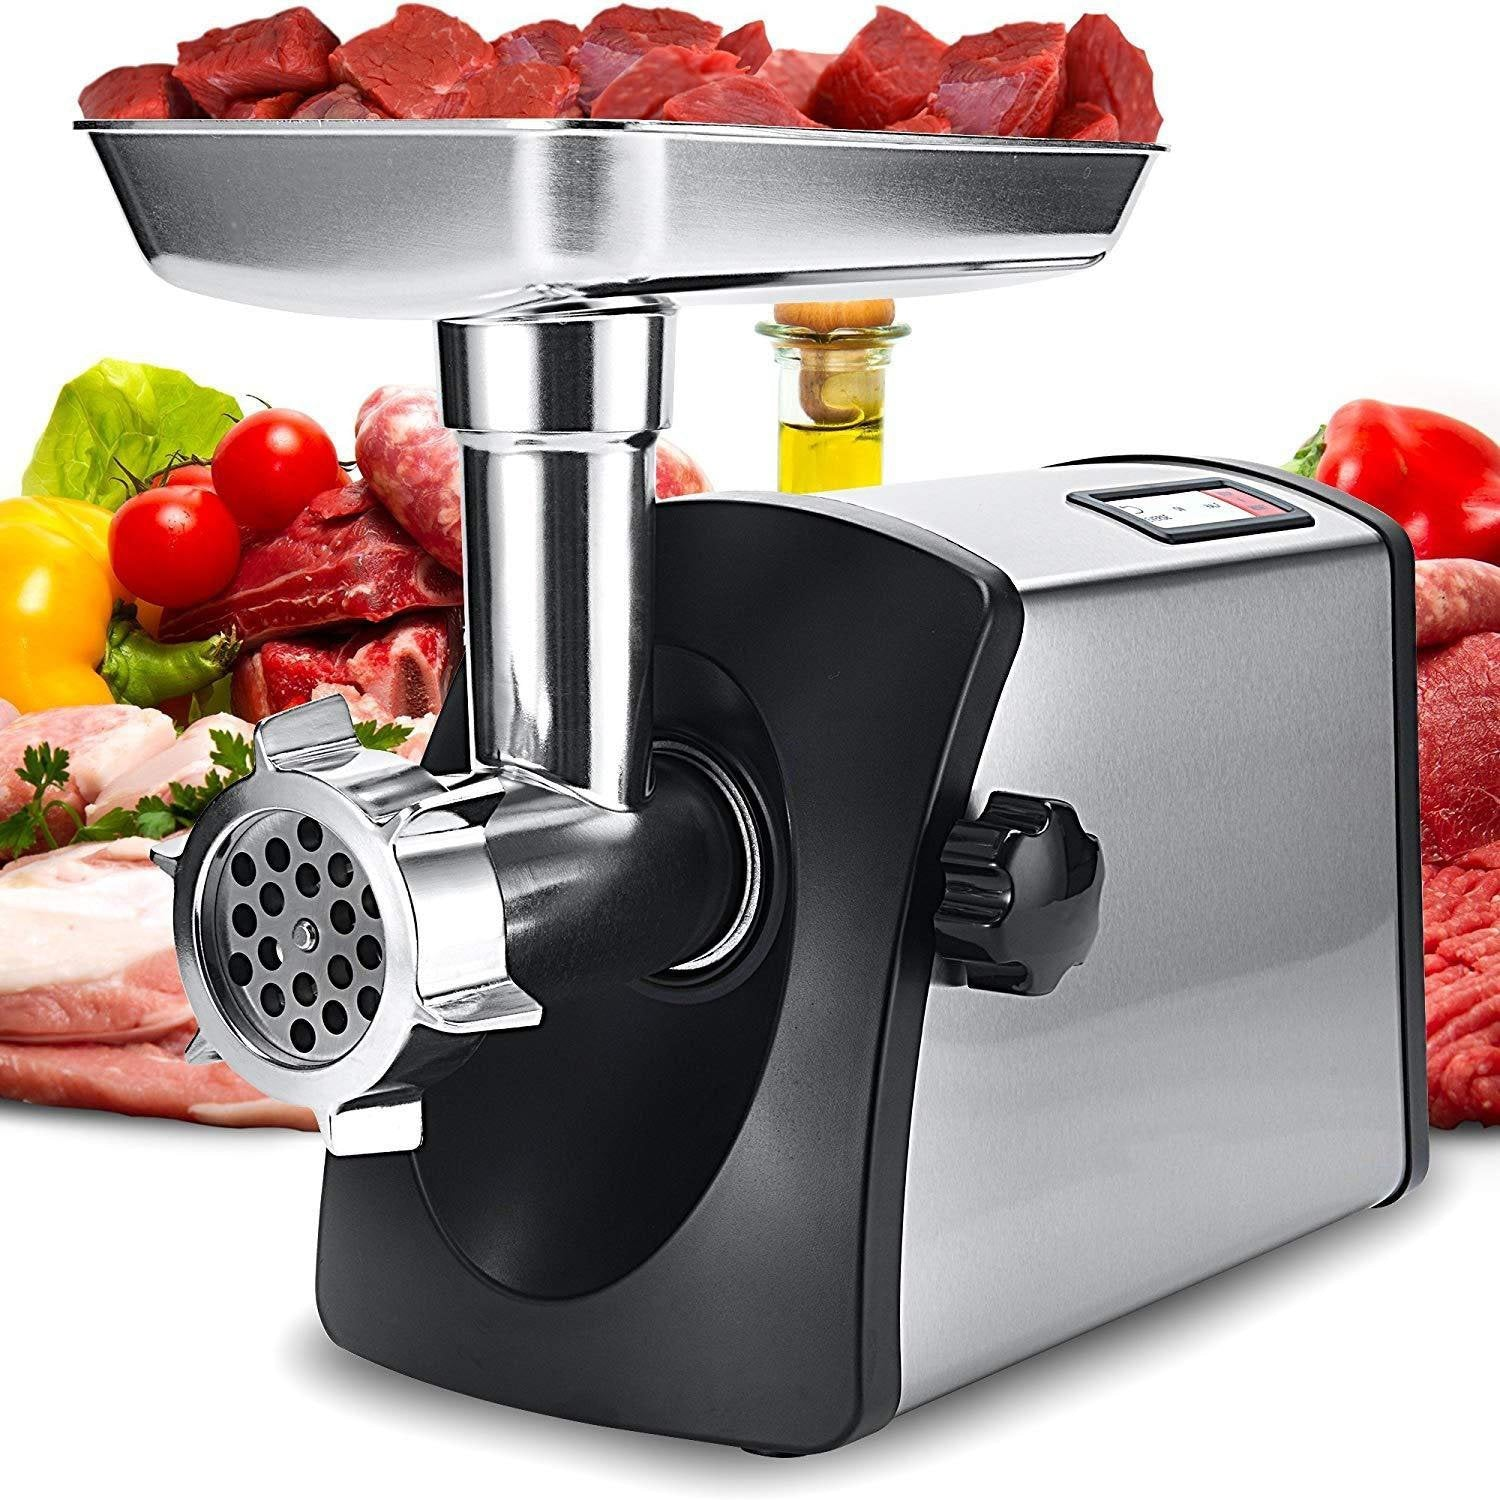 Stainless Steel Meat Mincer With 3 Grinding Plates